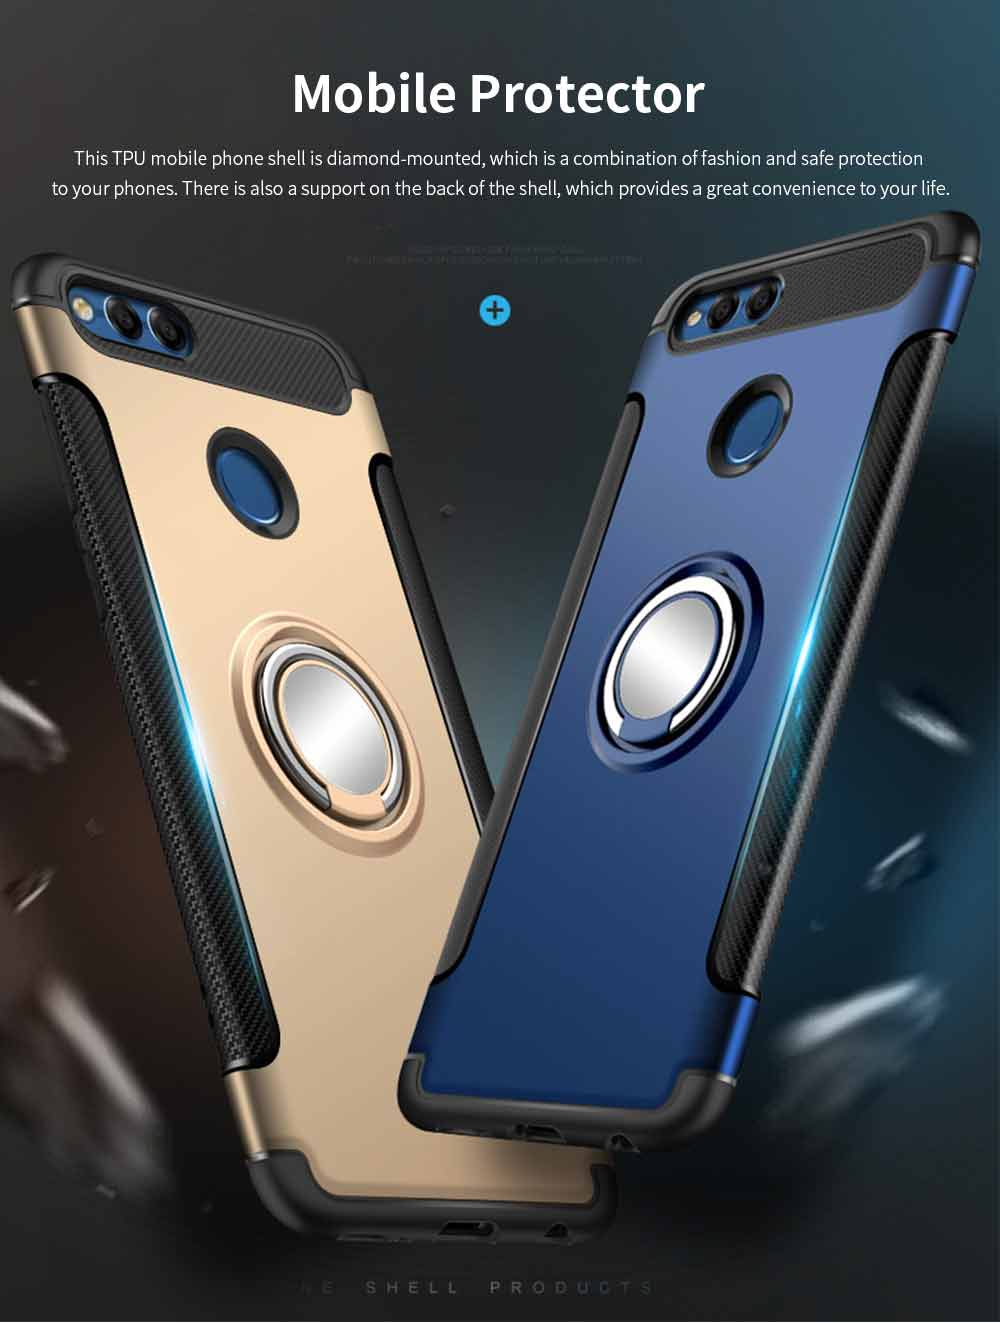 Creative Shock-resistant Cell Phone Protector for Huawei Honor/P20/mate 10/nova 3e, High Quality Silicone Phone Case with Metal Sheet for Magnetic Car Mount 0